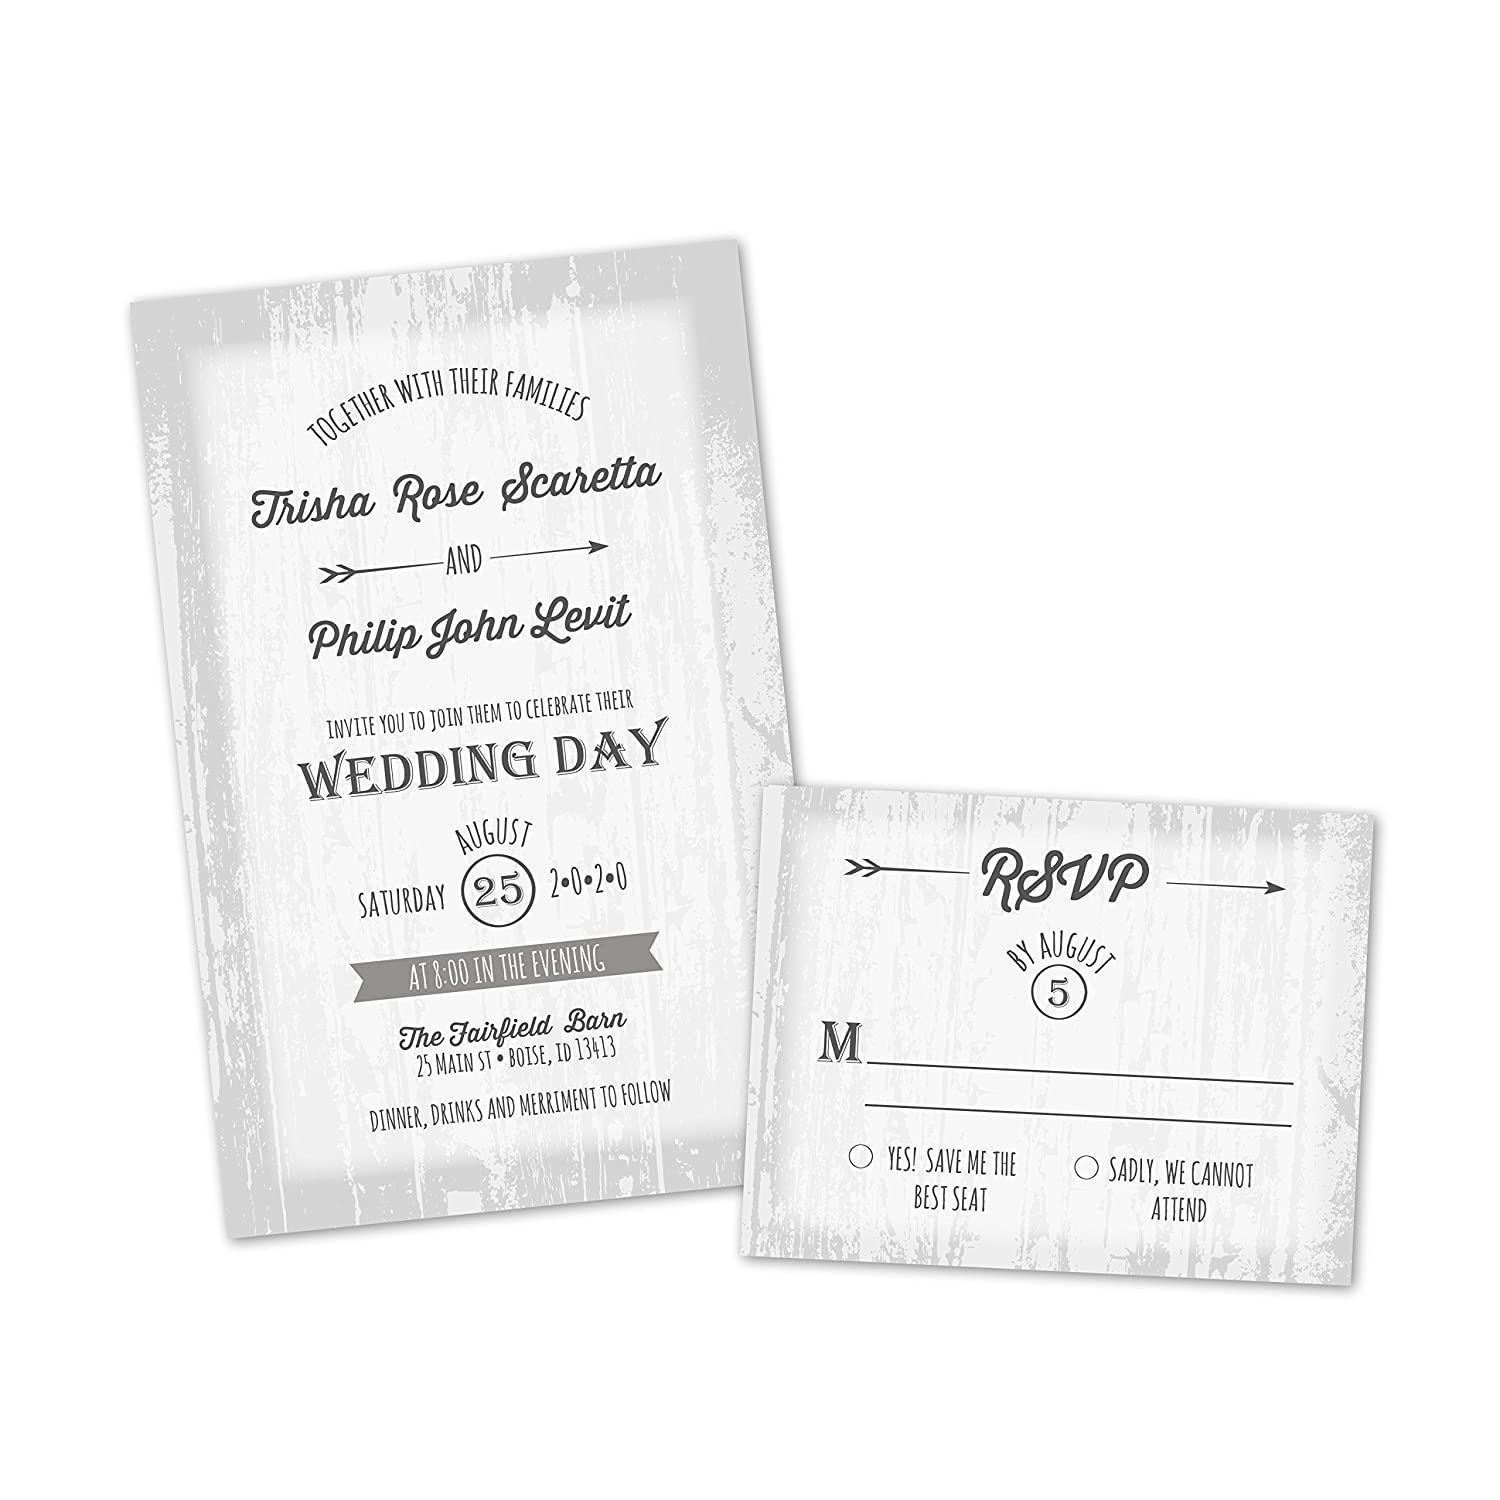 Amazon Set Of 10 Barn Door Personalized Wedding Invitations With Response Cards Home Kitchen: Wedding Invitations Barn Door At Websimilar.org